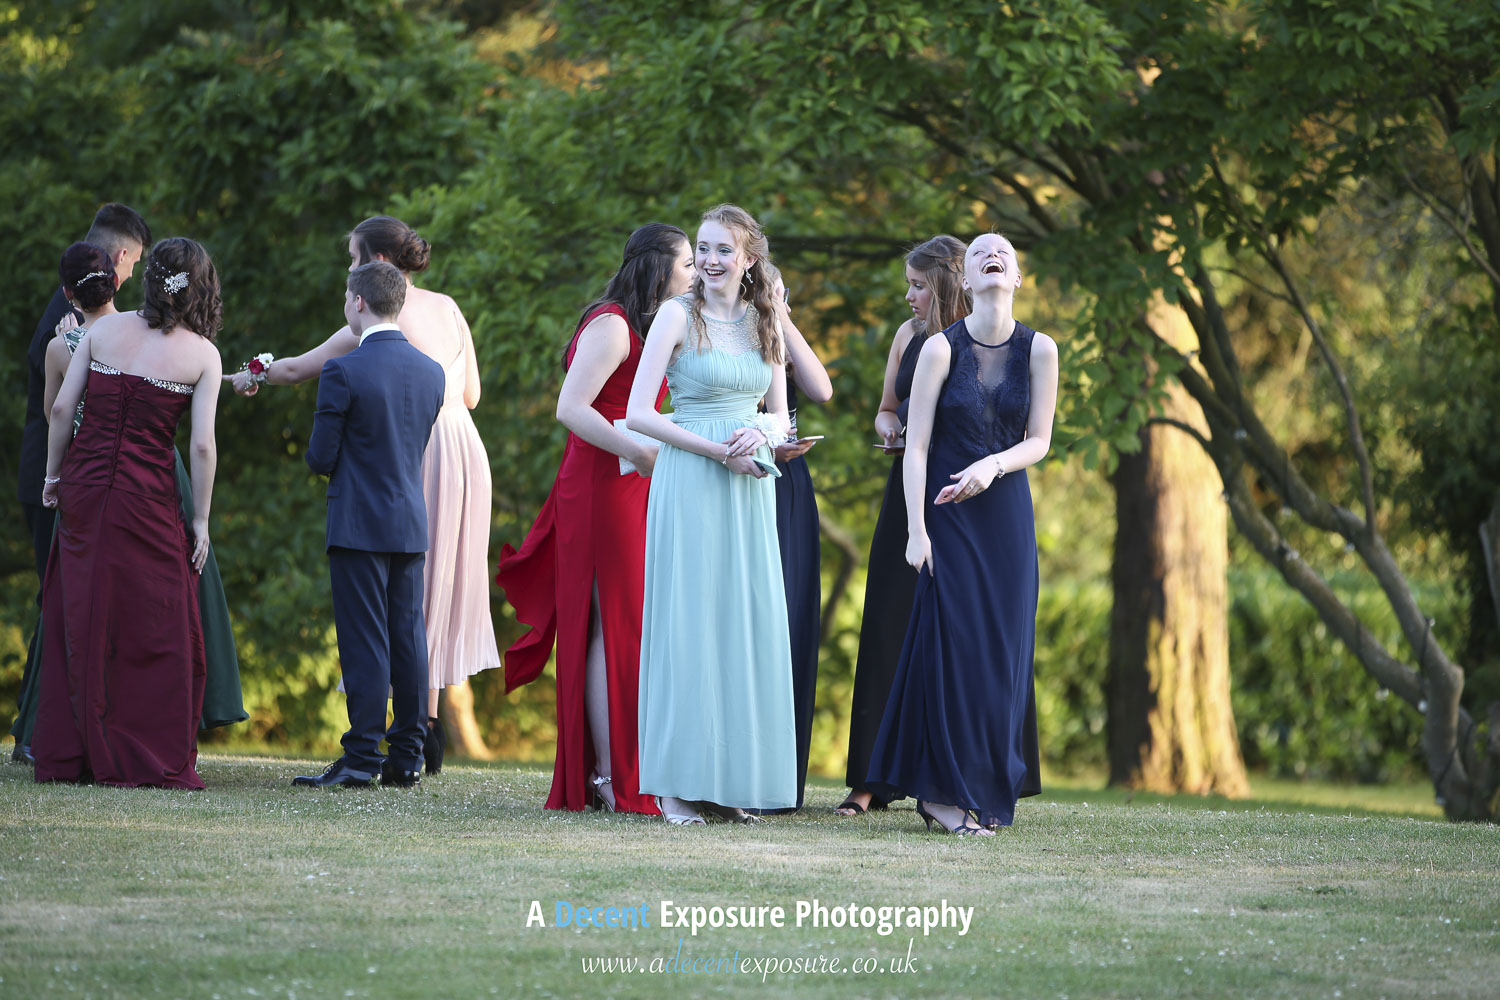 A Decent Exposure Prom & Ball Photography